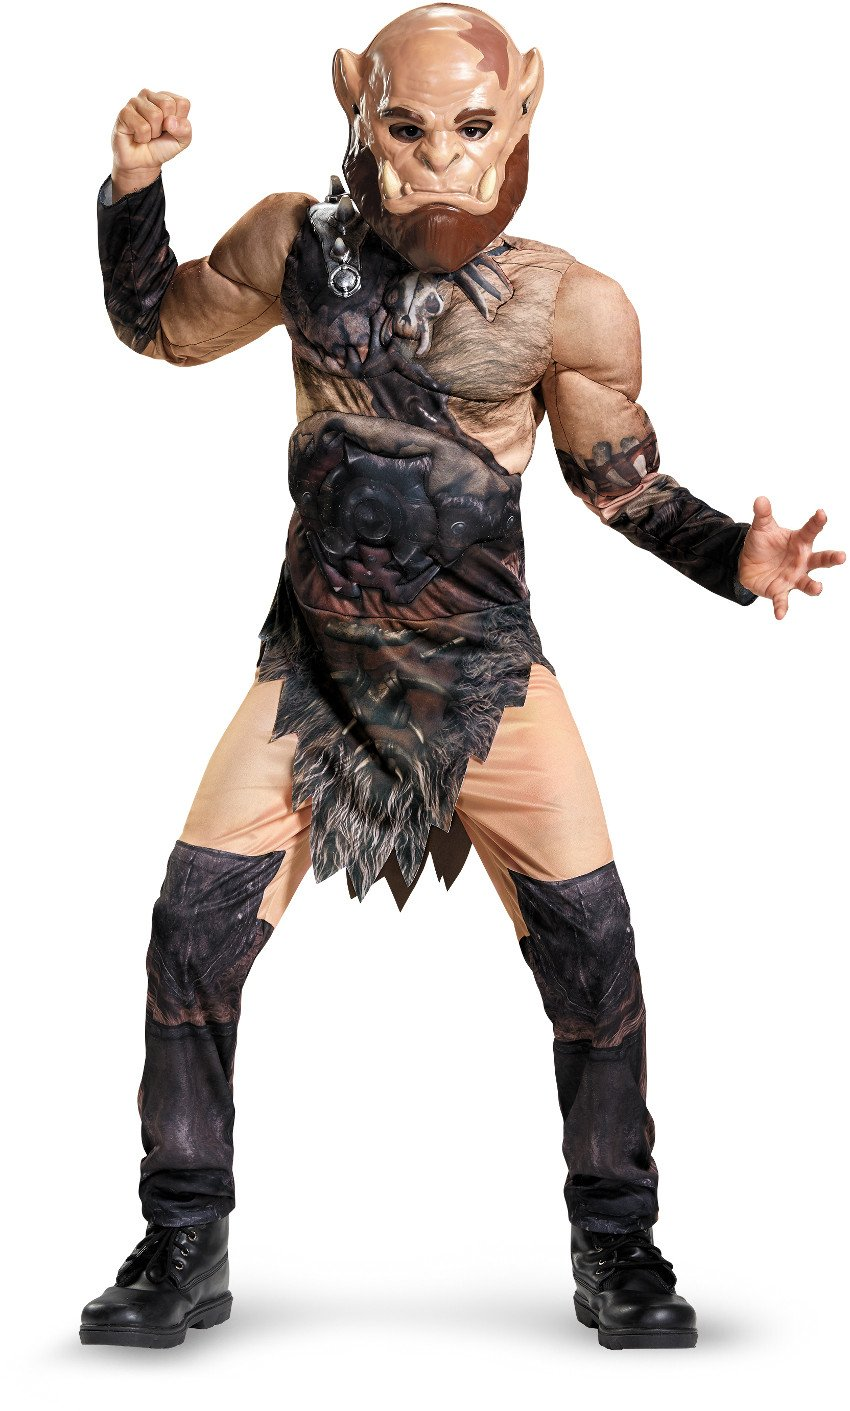 Orgrim Classic Muscle Warcraft Legendary Costume, X-Large/14-16